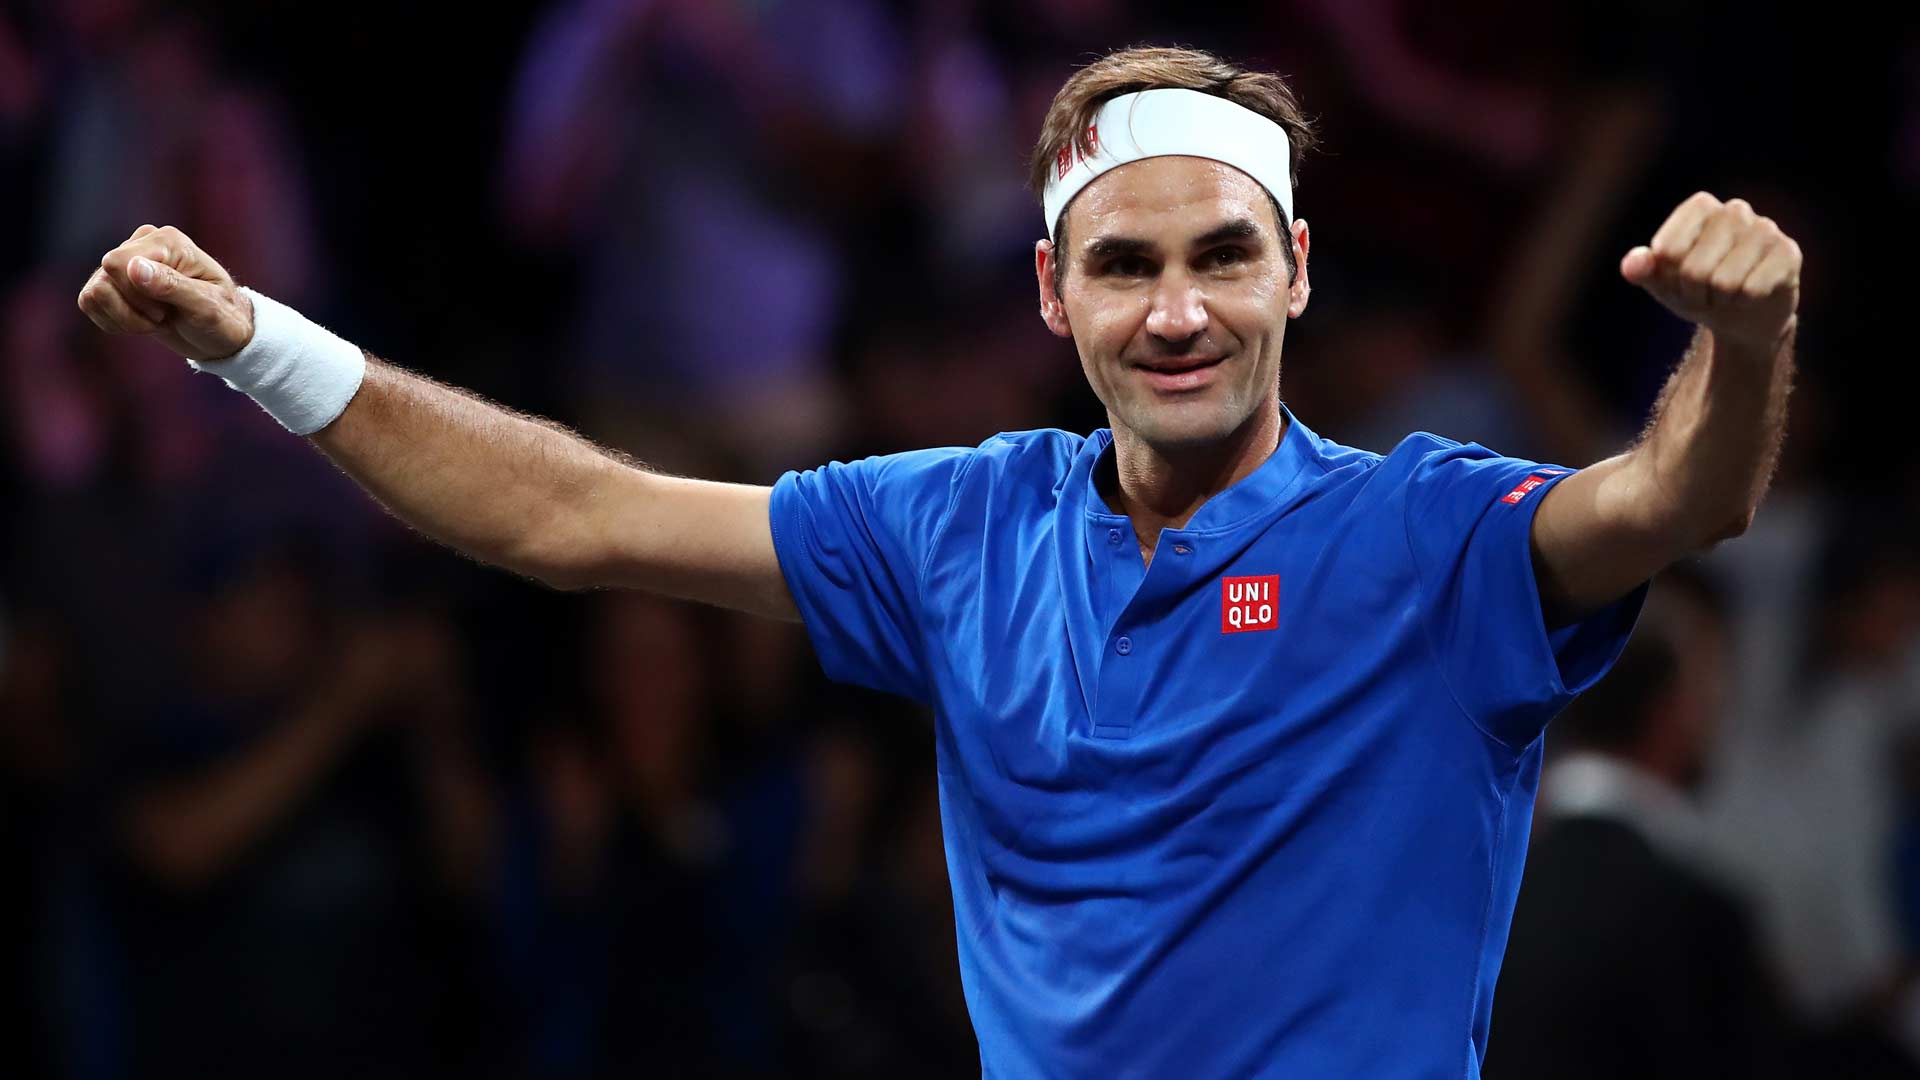 <a href='/en/players/roger-federer/f324/overview'>Roger Federer</a> celebrates beating <a href='/en/players/john-isner/i186/overview'>John Isner</a> at the <a href='/en/tournaments/laver-cup/9210/overview'>Laver Cup</a>